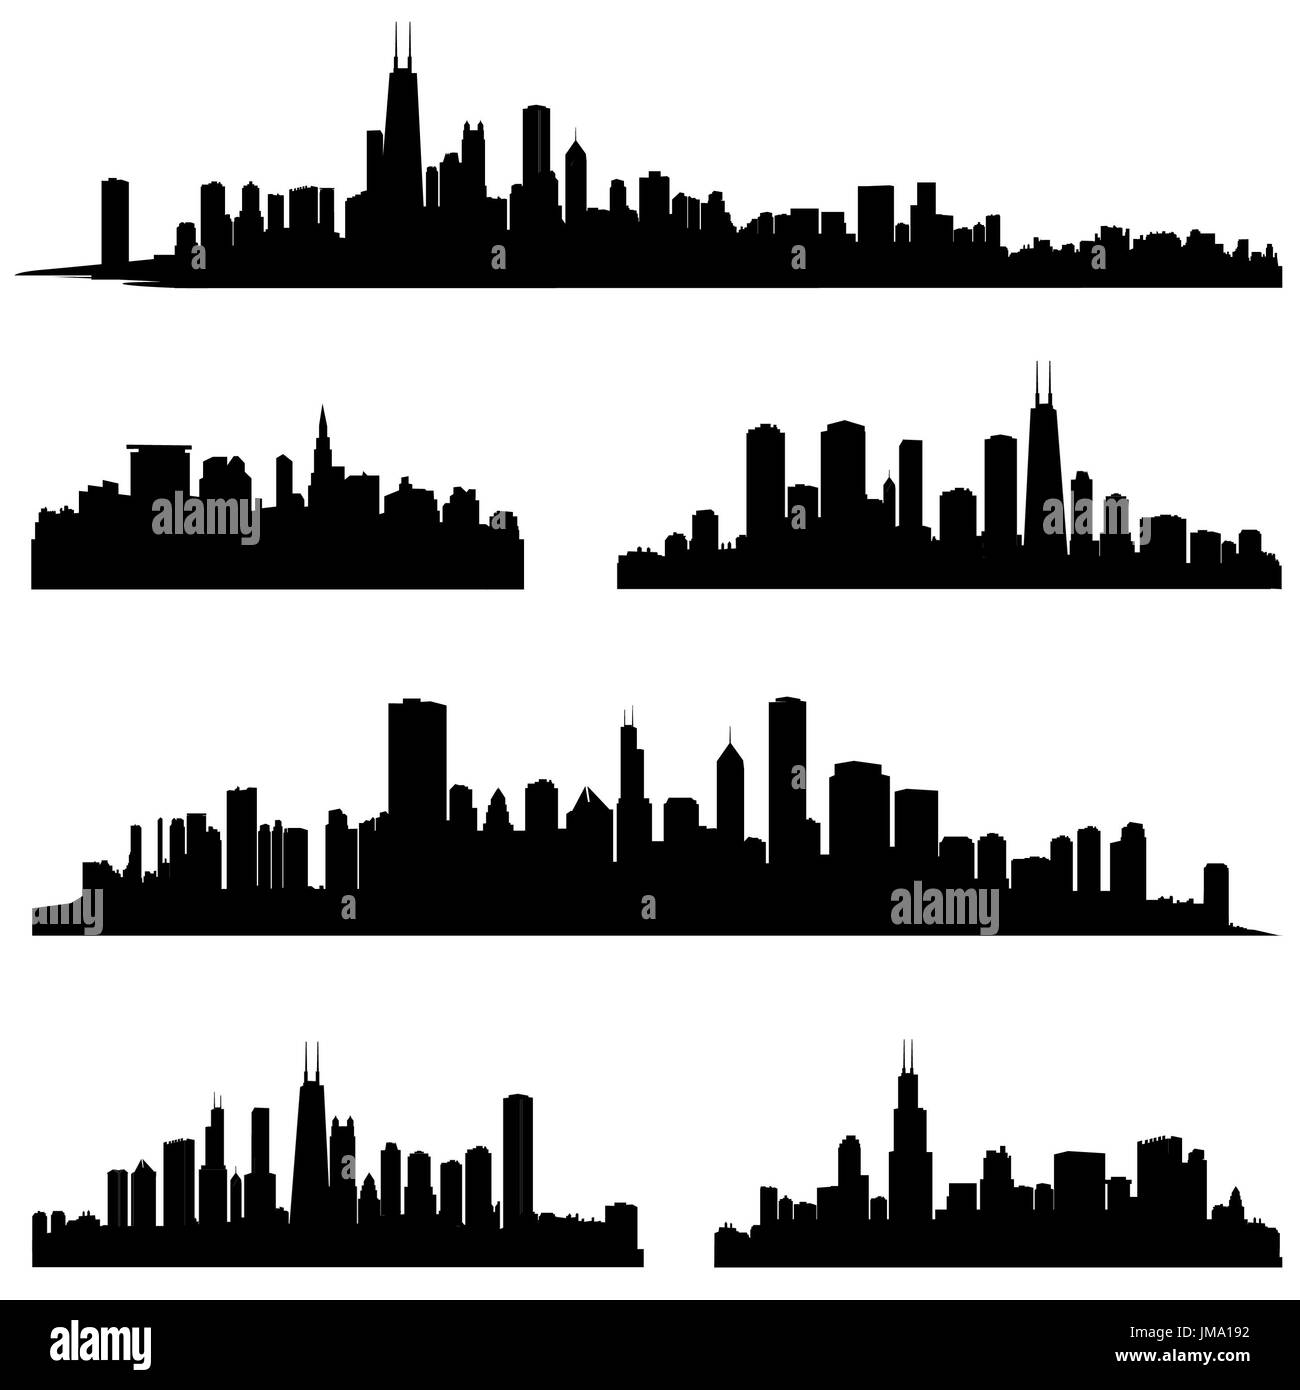 City silhouette vector set. Panorama city background. Skyline urban border collection. - Stock Image